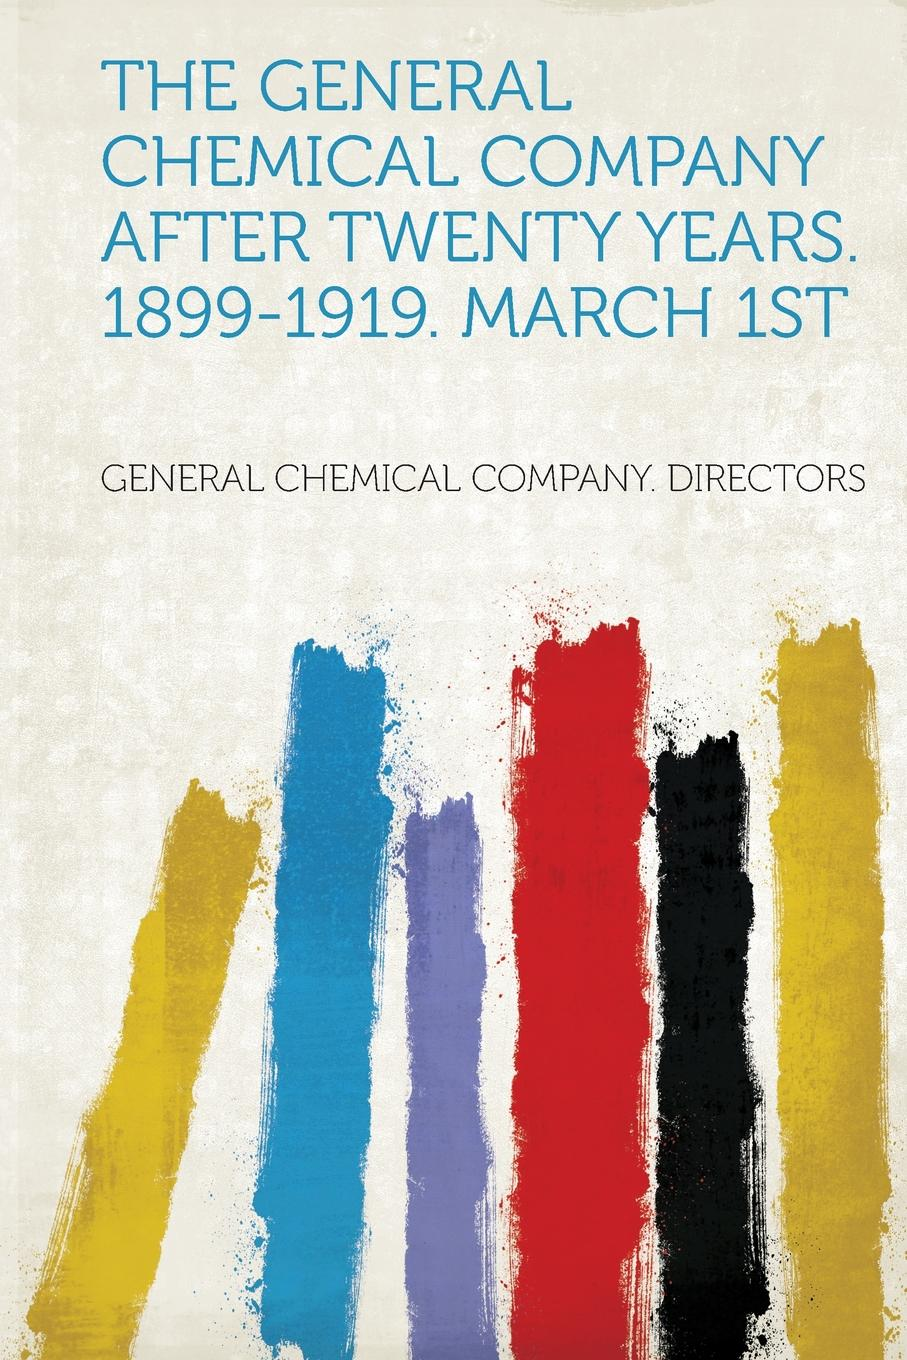 The General Chemical Company After Twenty Years. 1899-1919. March 1St